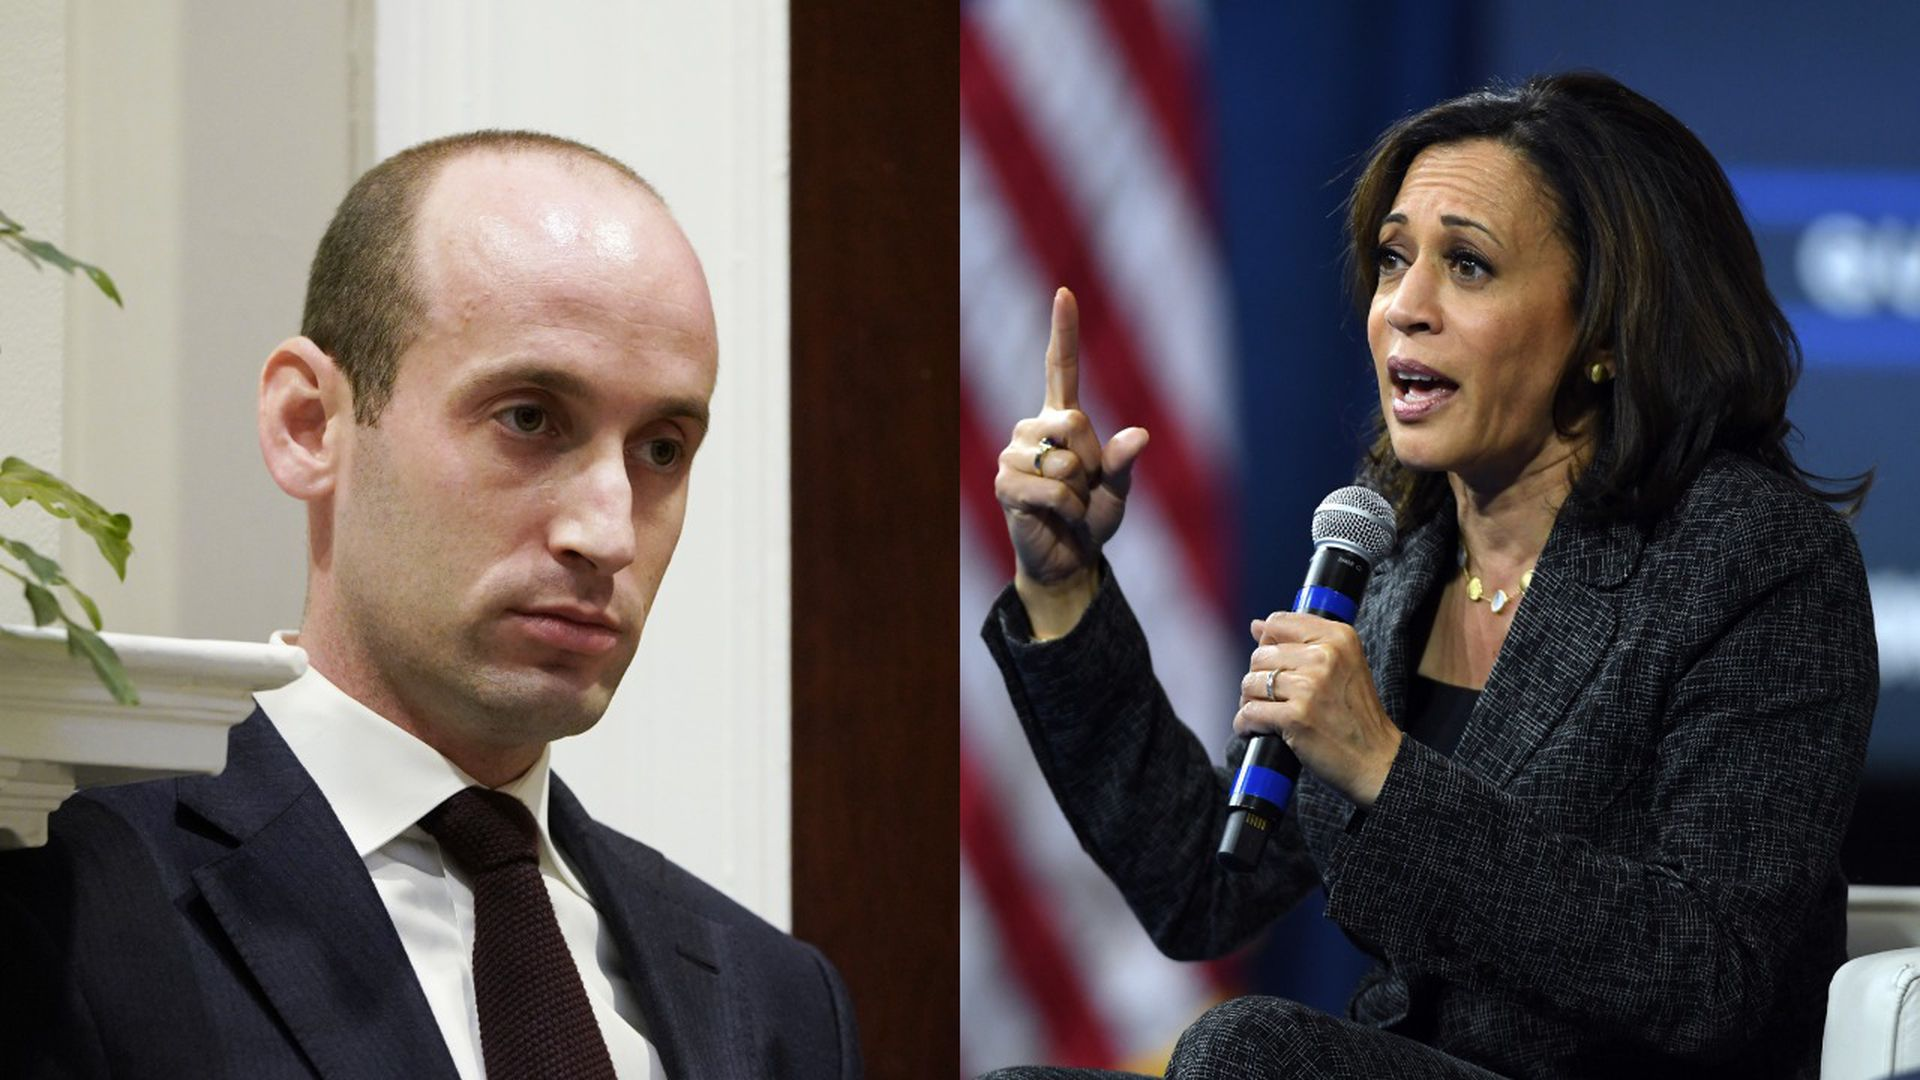 Kamala Harris leads 27 senators in demanding Stephen Miller's removal after leaked emails